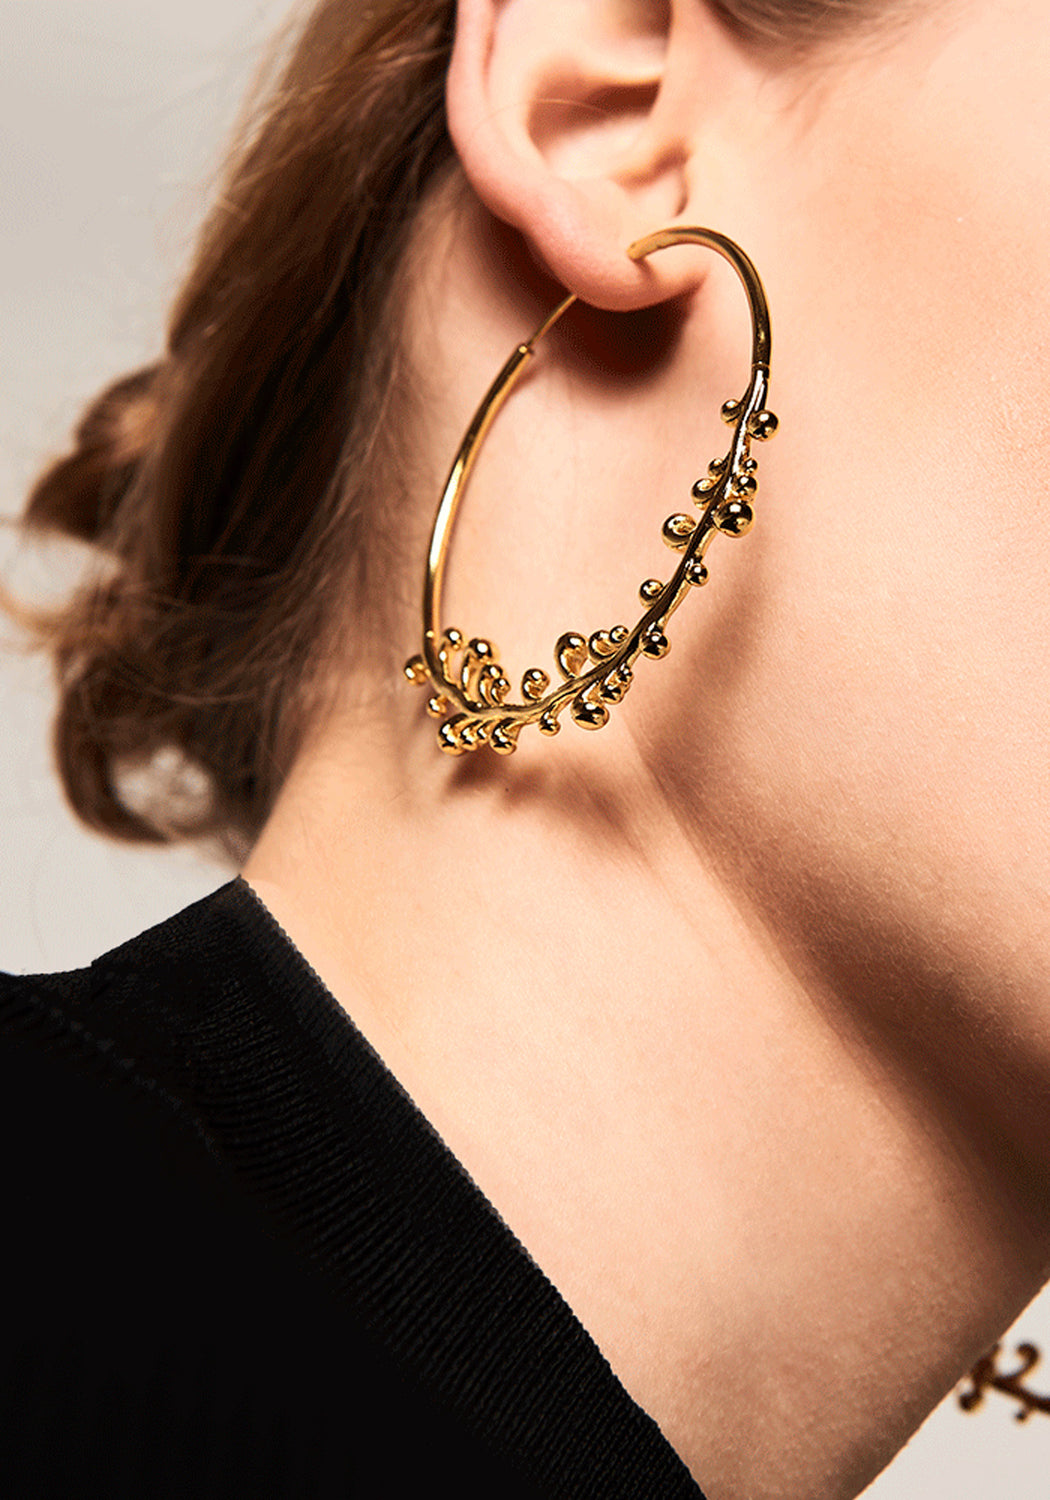 California Intricate Gold Hoop Earrings